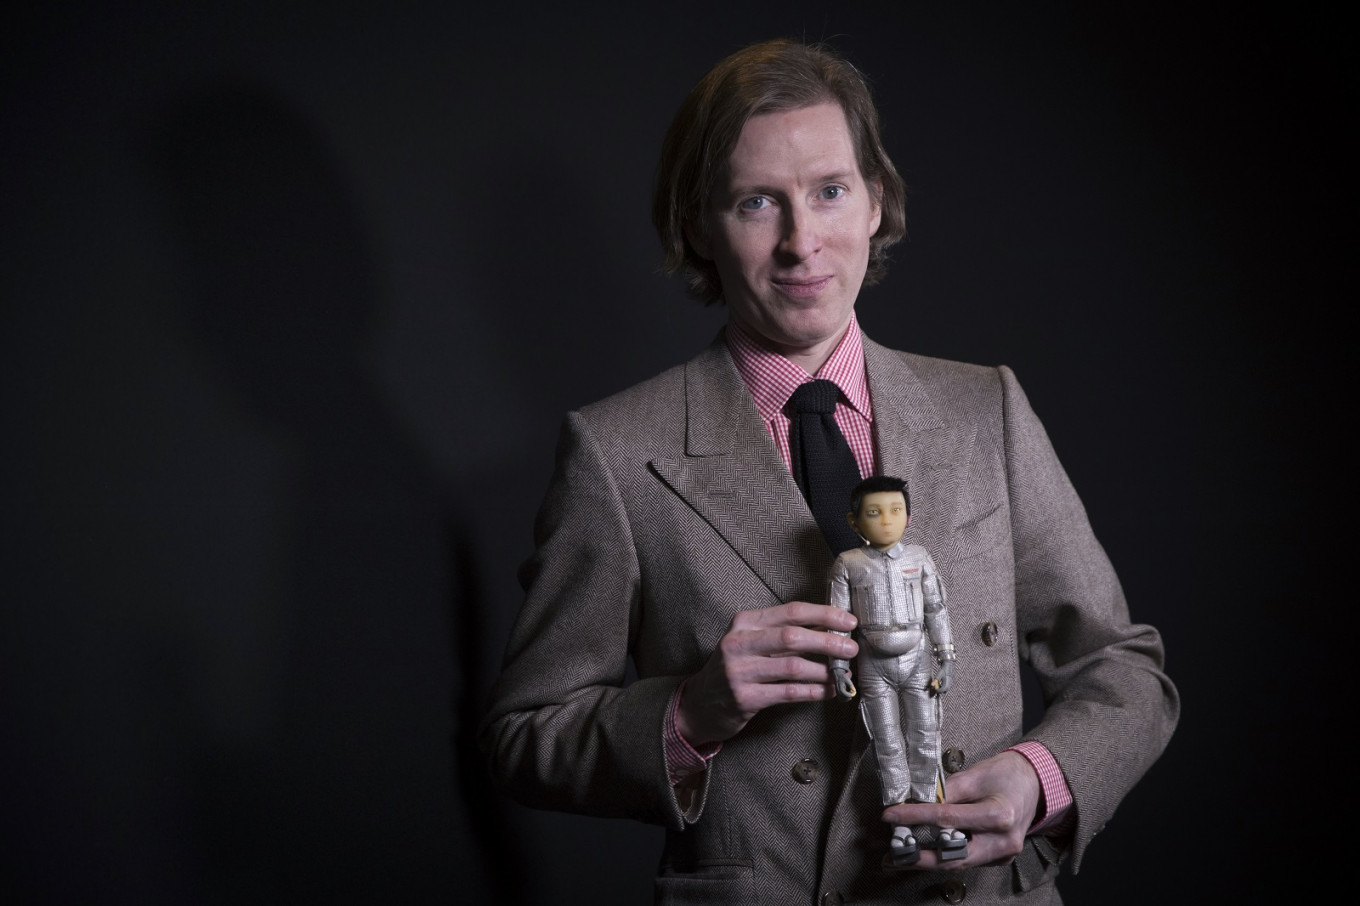 Wes Anderson, Pixar movies among Cannes would-be highlights